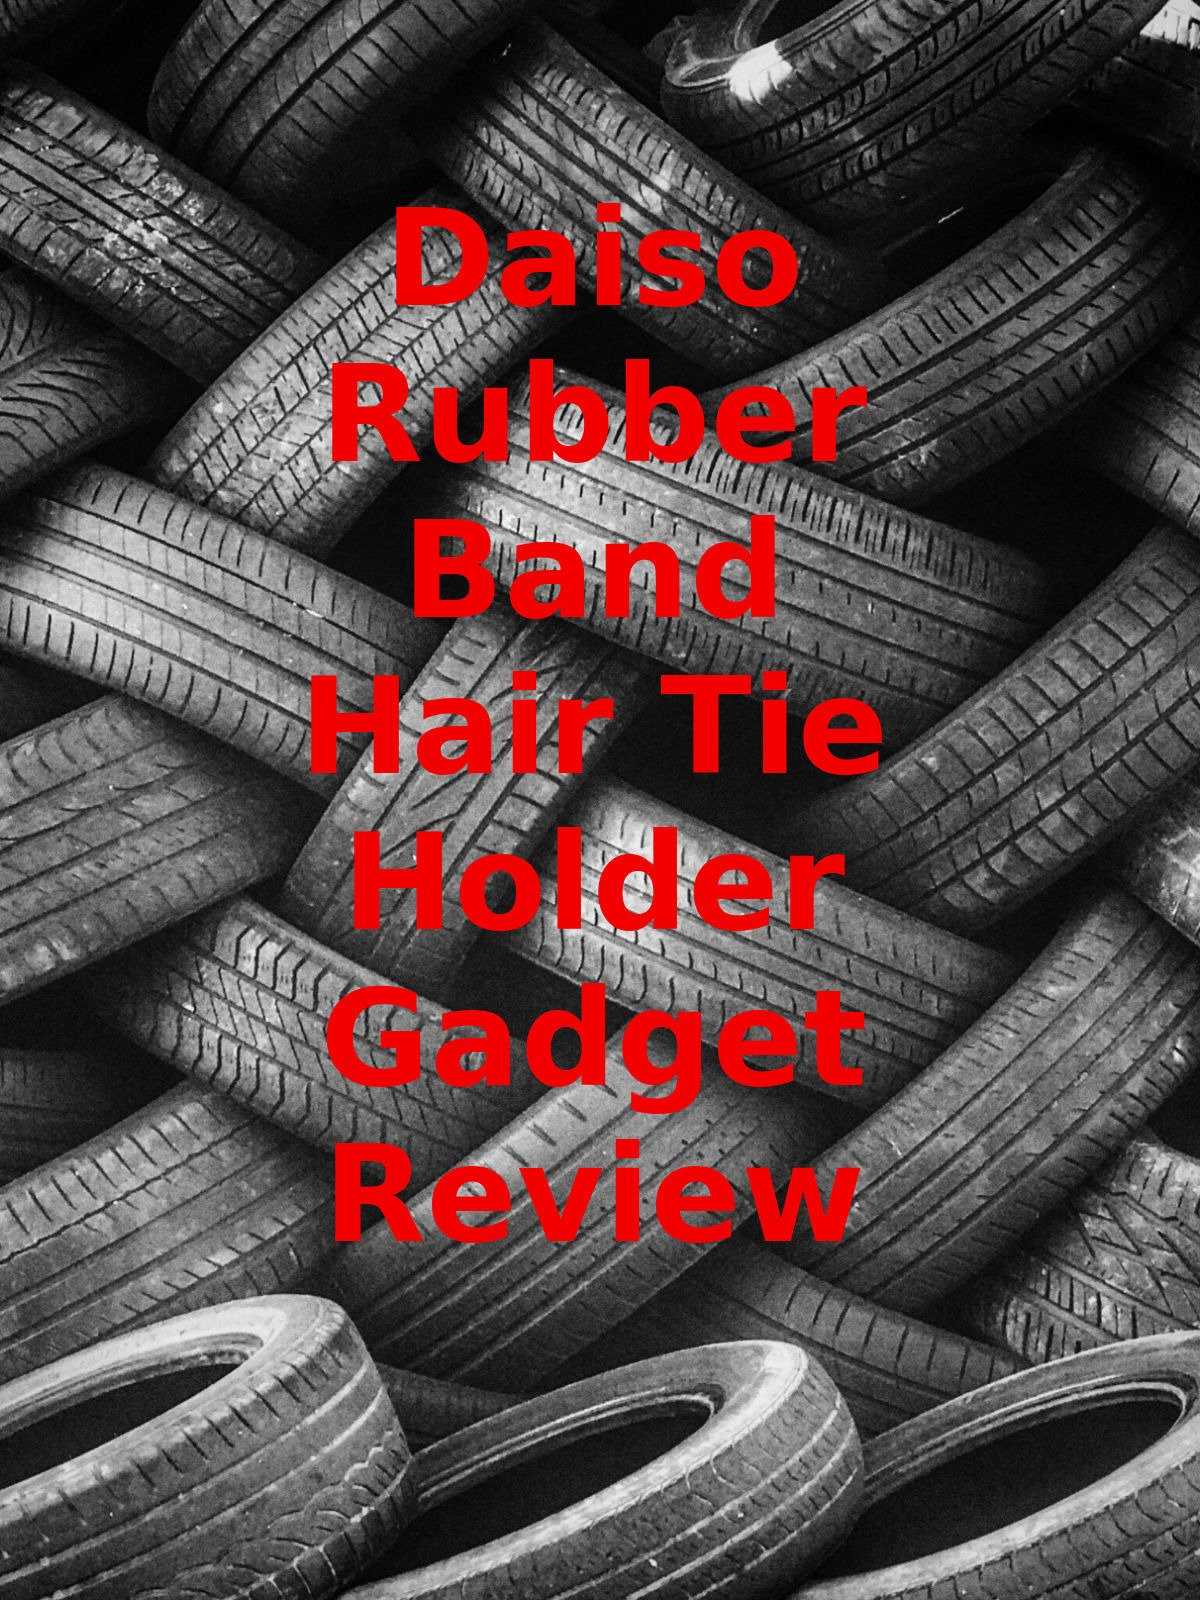 Review: Daiso Rubber Band Hair Tie Holder Gadget Review